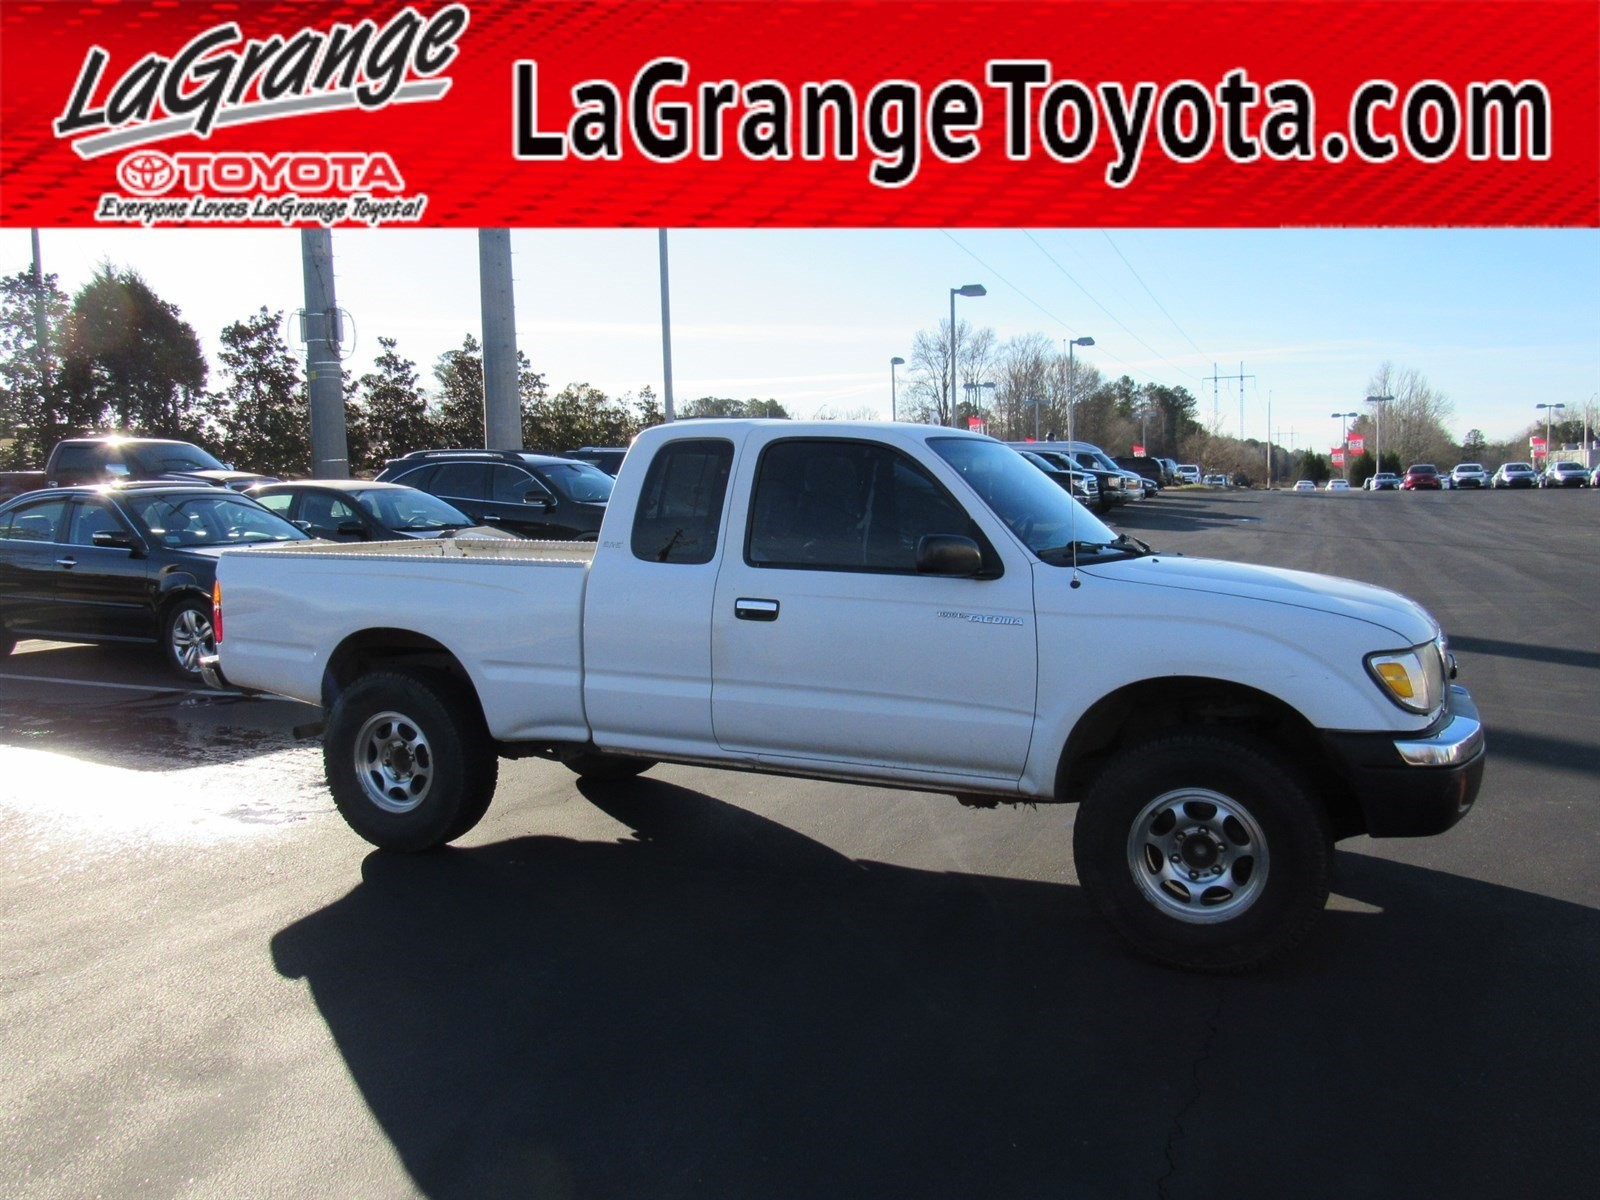 2005 Toyota Tacoma Parts Diagram Pre Owned 1999 Ta A Xtracab Pickup Prerunner Auto Truck In